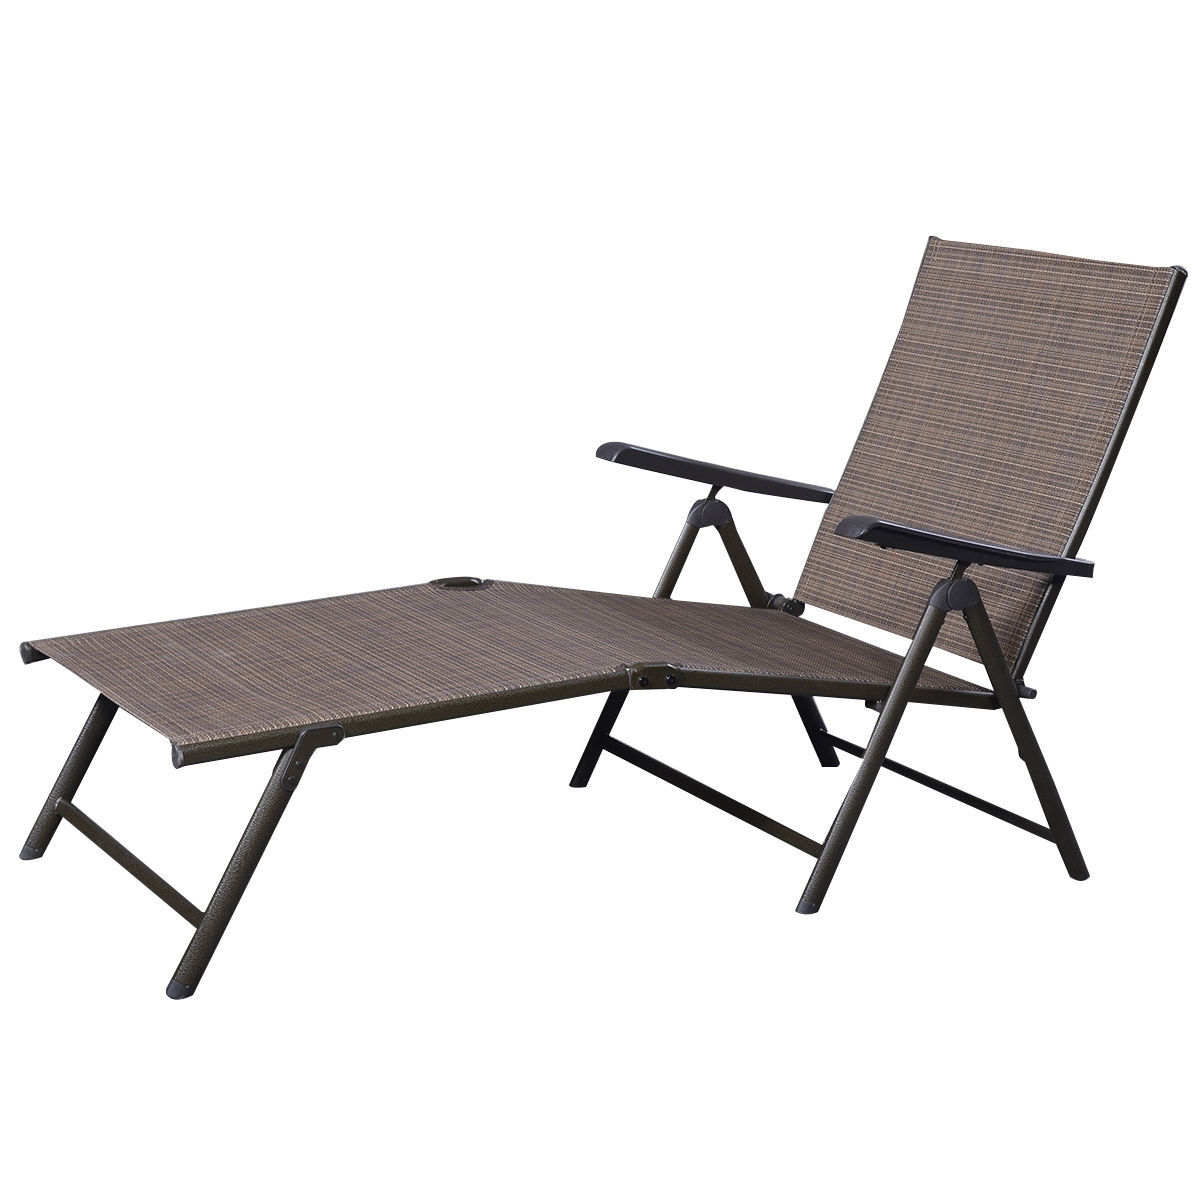 Outdoor Lounge Used Wrought Iron Outdoor Lounge Furniture Decor